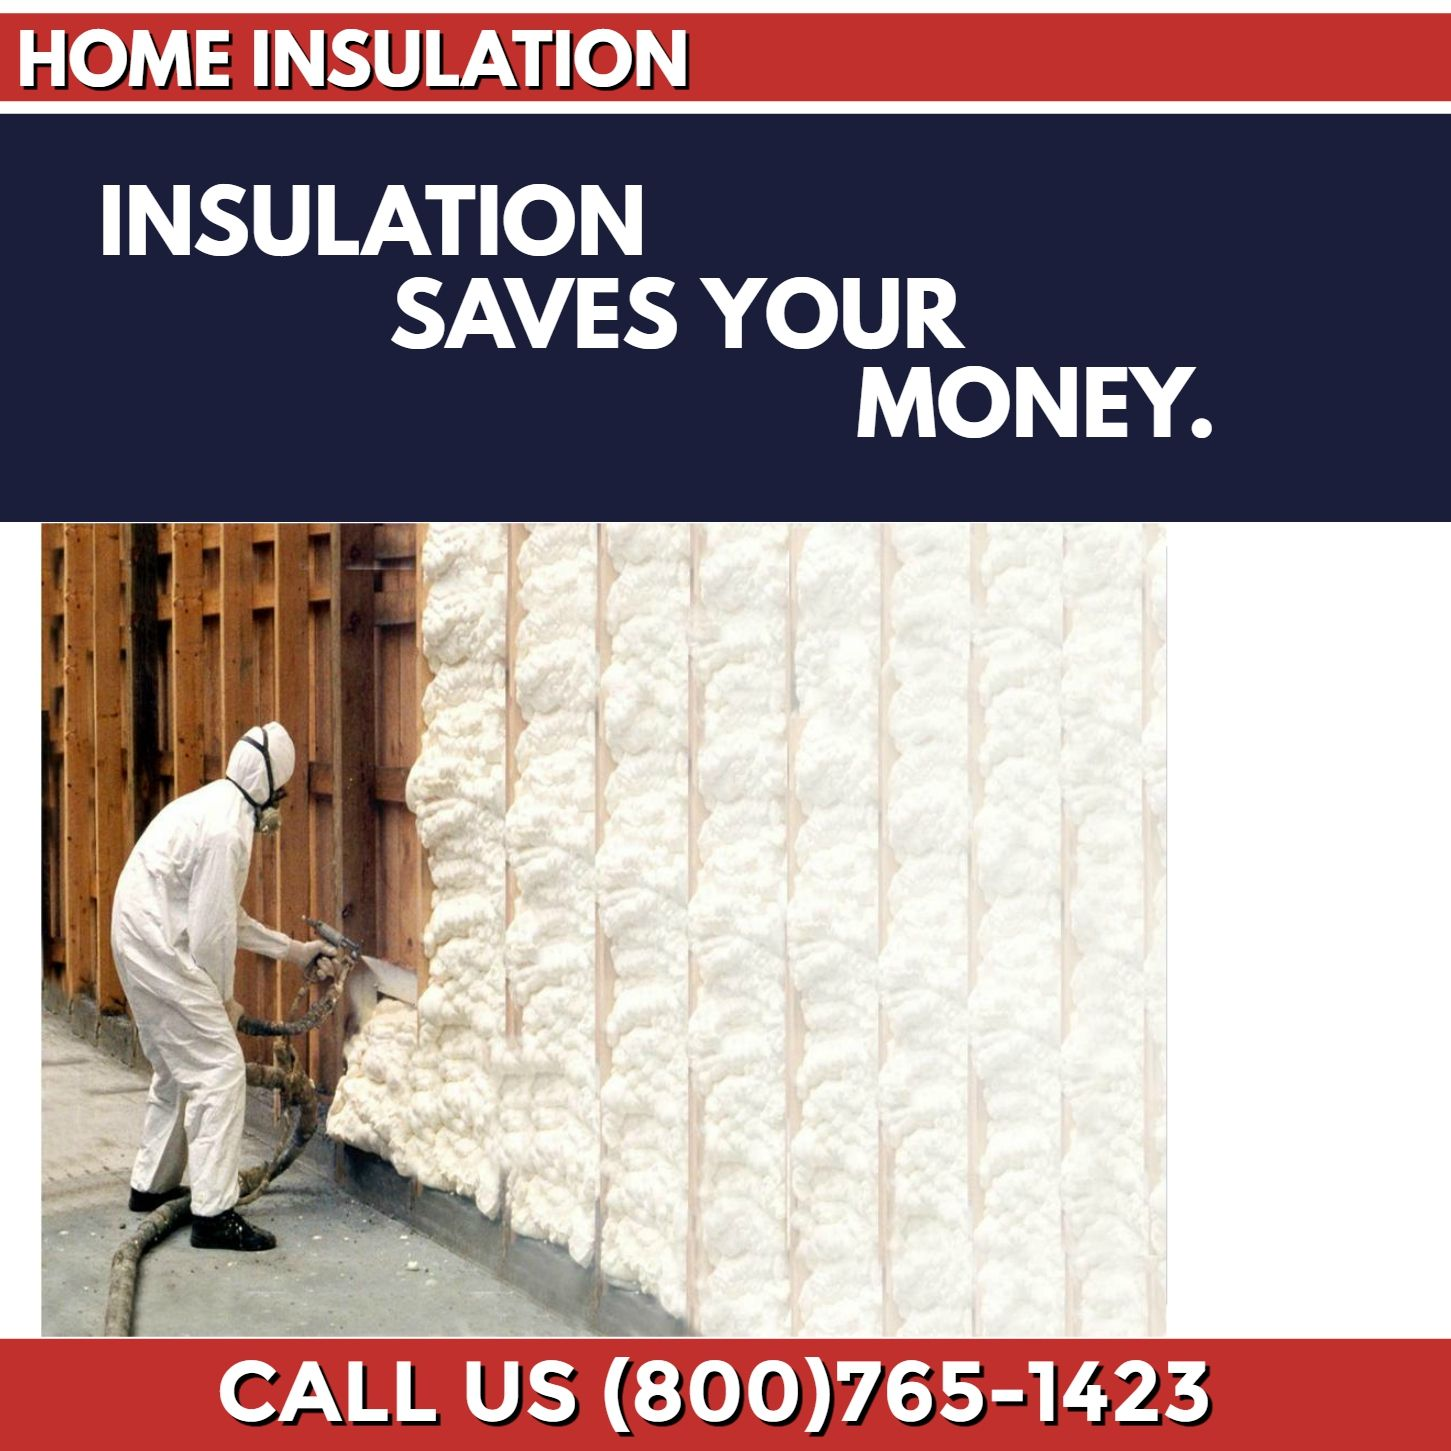 Home Home Insulation Air Conditioning System Remodel